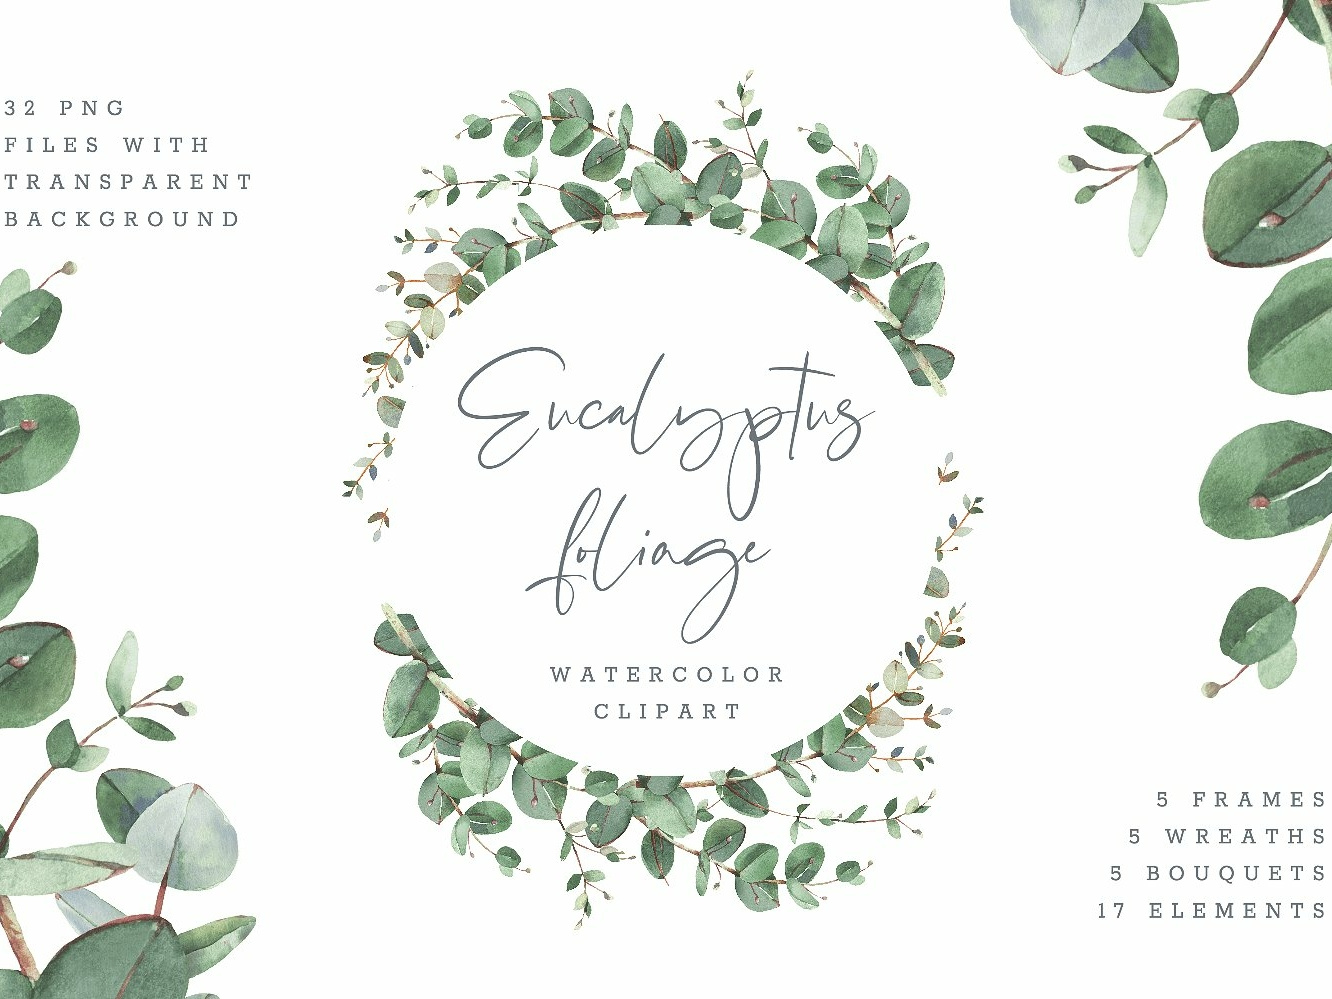 Eucalyptus Foliage watercolor by Graphics Collection on Dribbble.